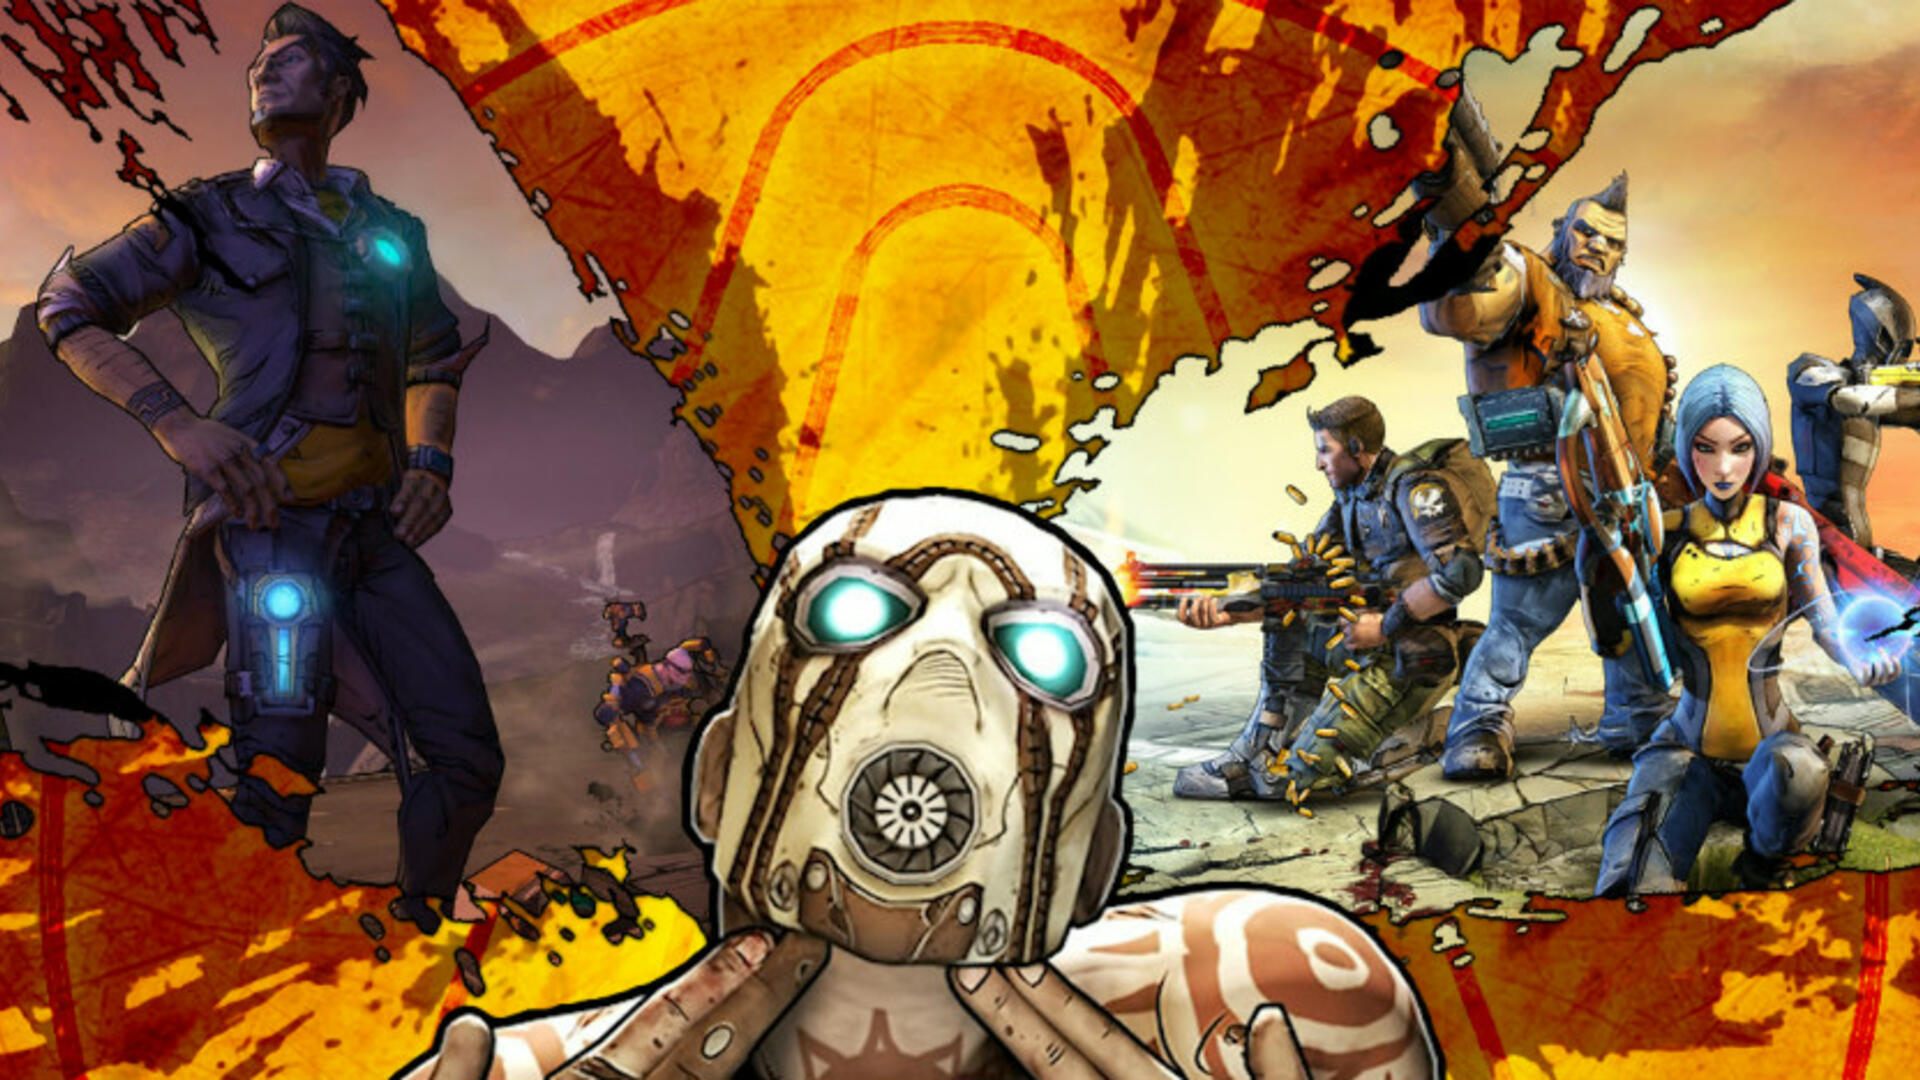 Borderlands 3 Isn't On Gearbox's Radar Right Now